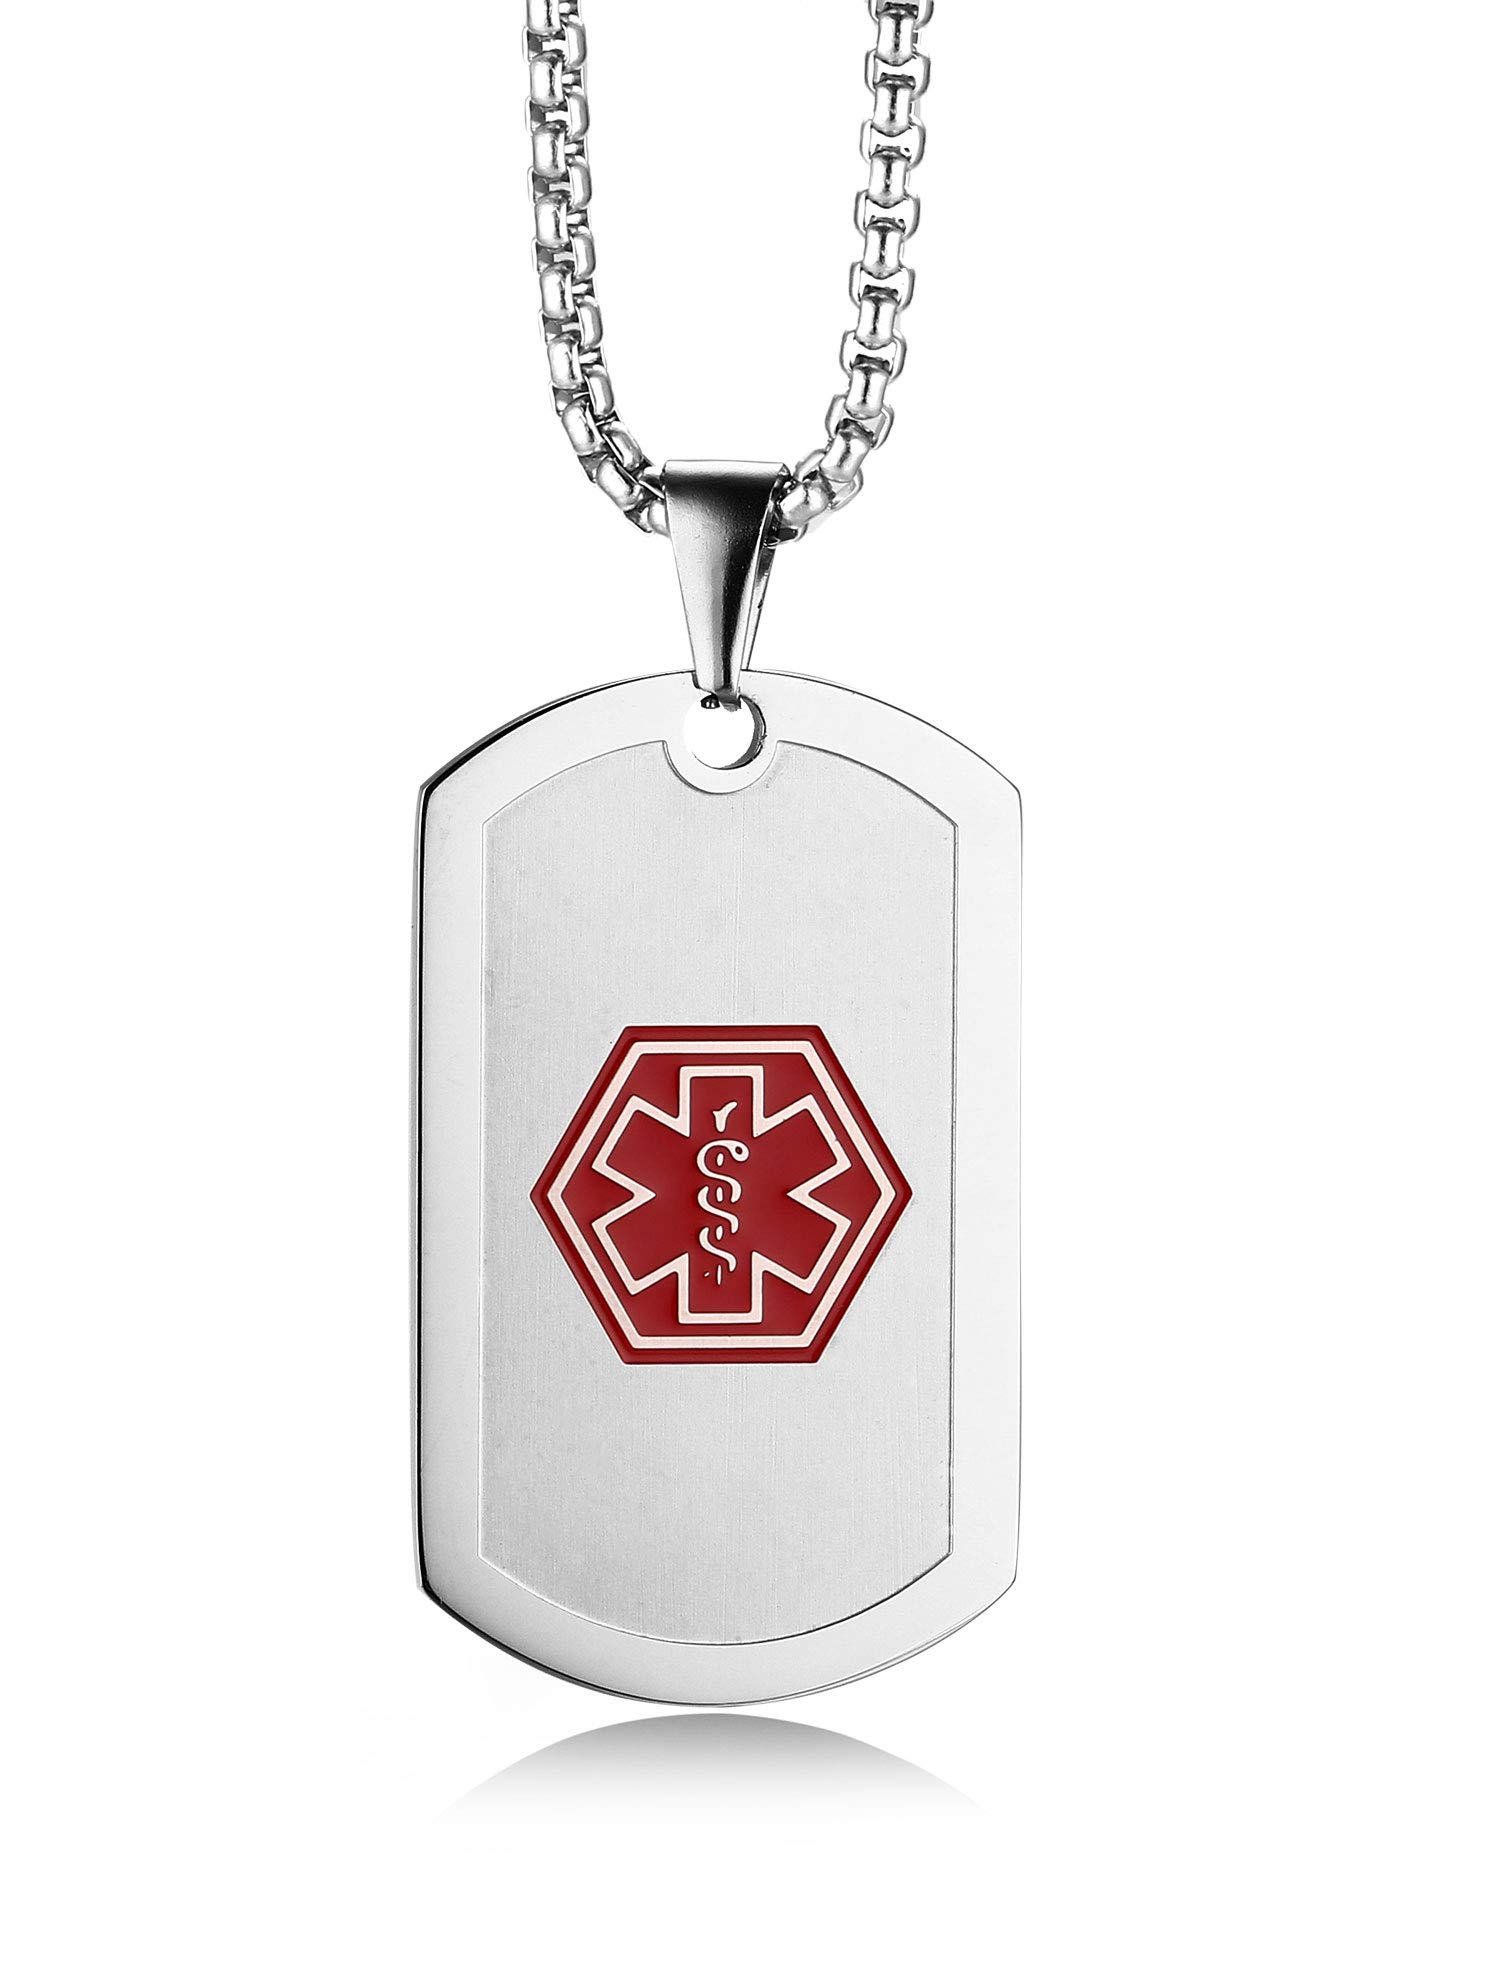 JF.JEWELRY Stainless Steel Medical ID Alert Tag Necklace for Men & Women 20 inches Free Engraving